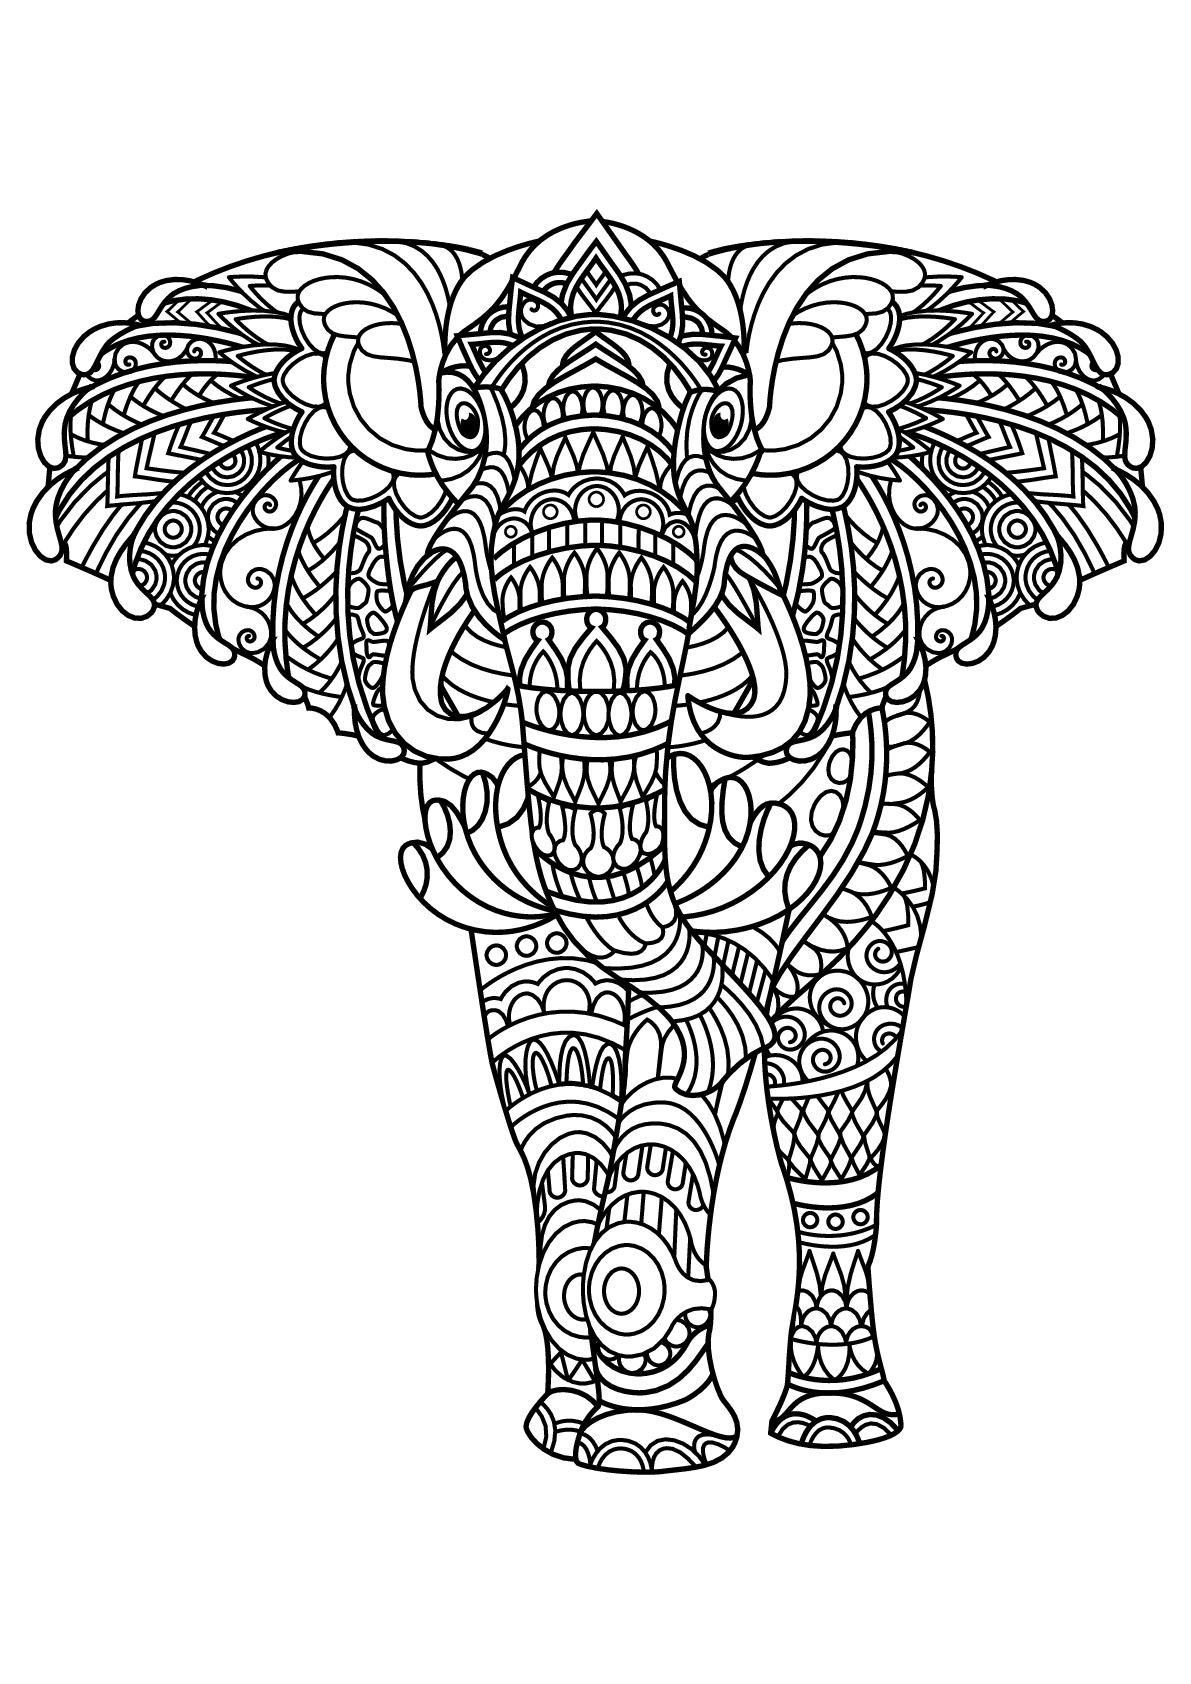 coloring pictures elephant elephants to color for children elephants kids coloring pictures elephant coloring